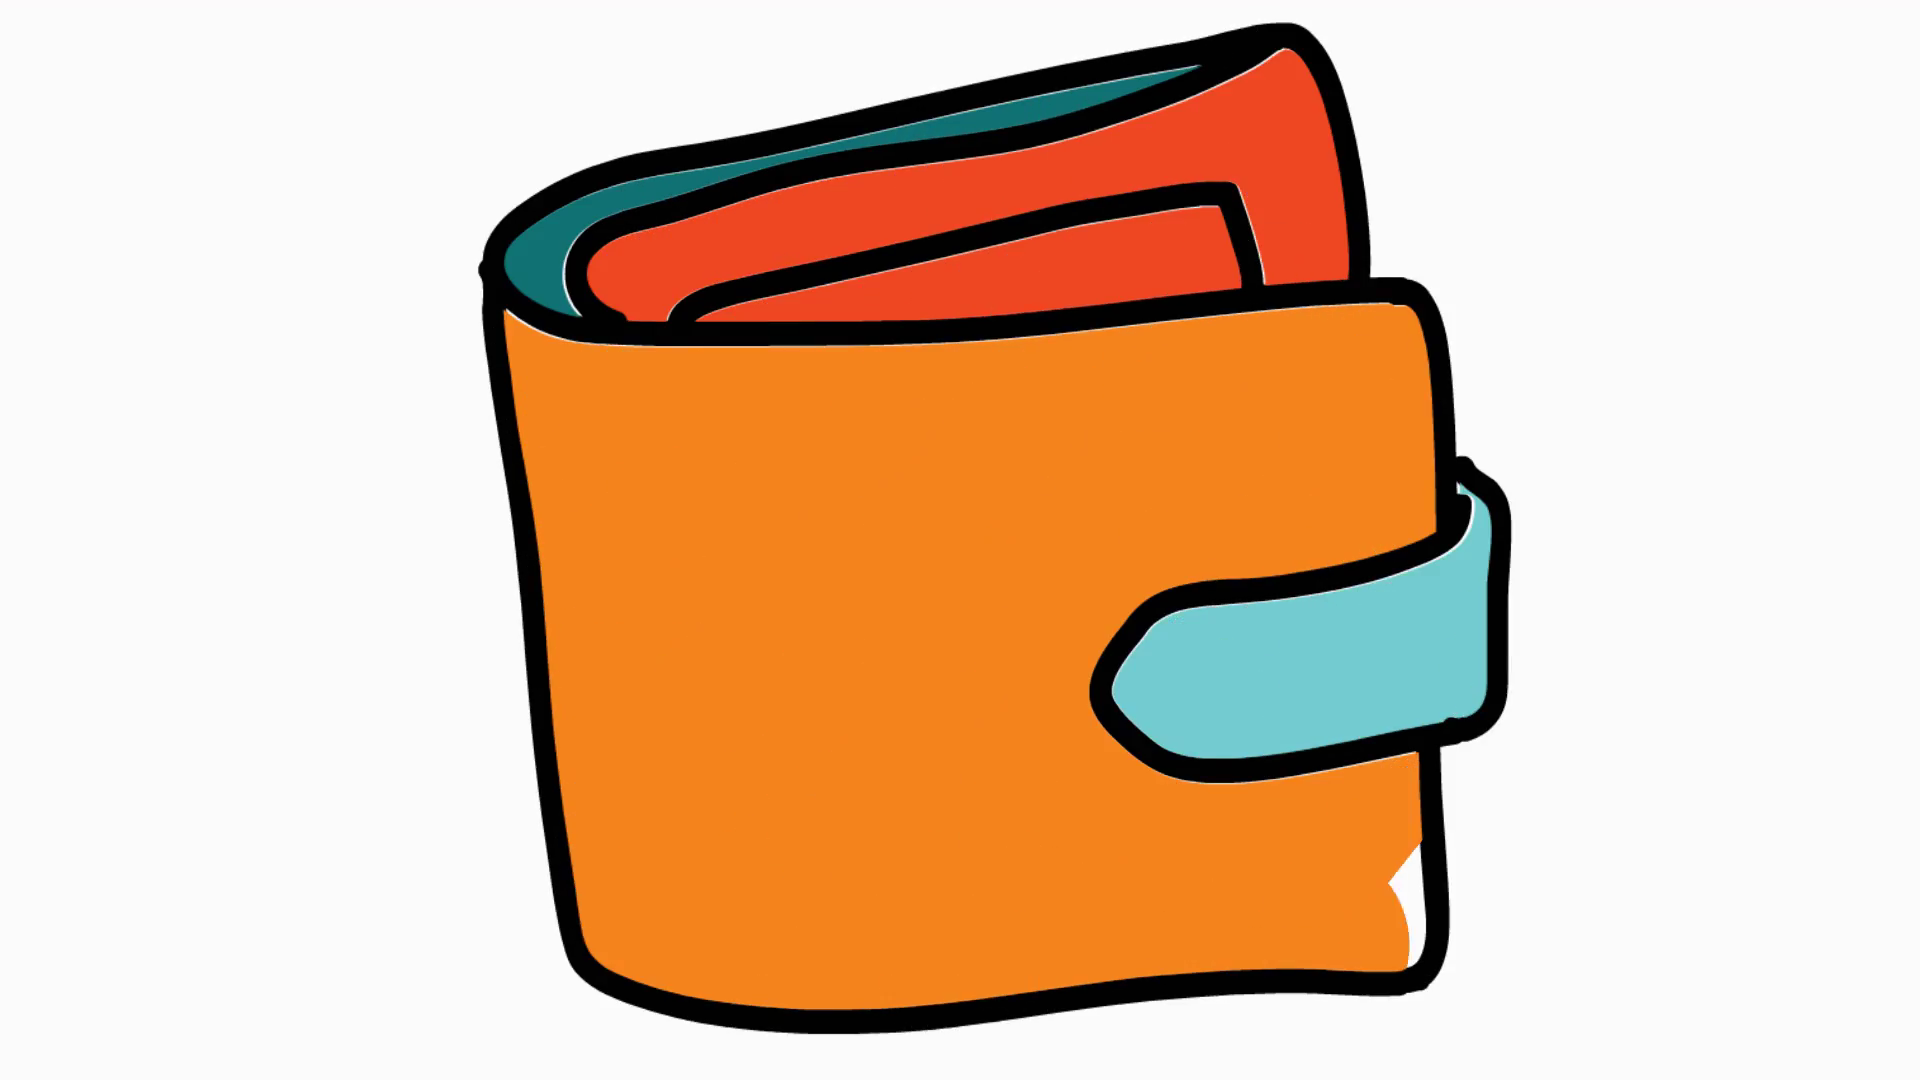 wallet icon cartoon illustration hand drawn animation transparent Motion  Background - VideoBlocks